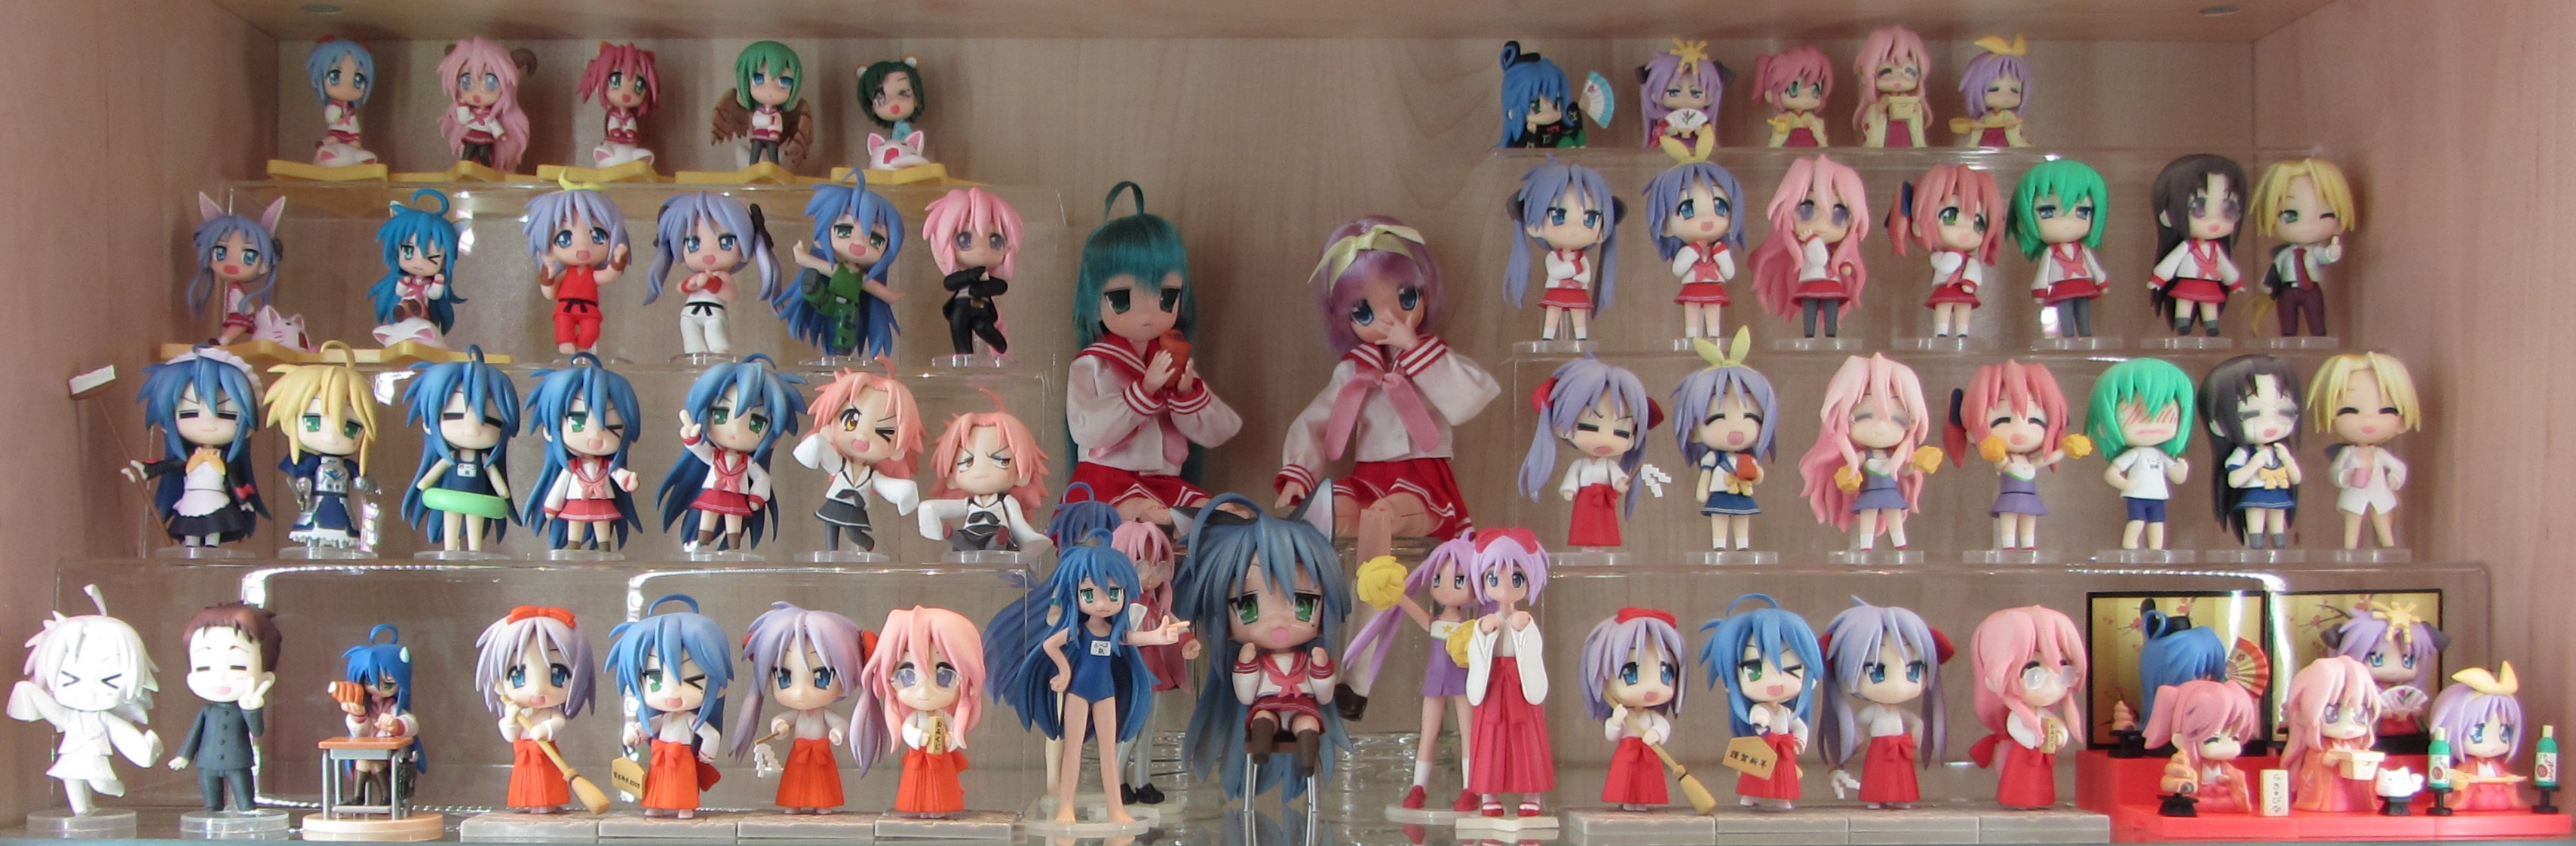 https://static.myfigurecollection.net/upload/pictures/2016/01/20/1458039.jpeg